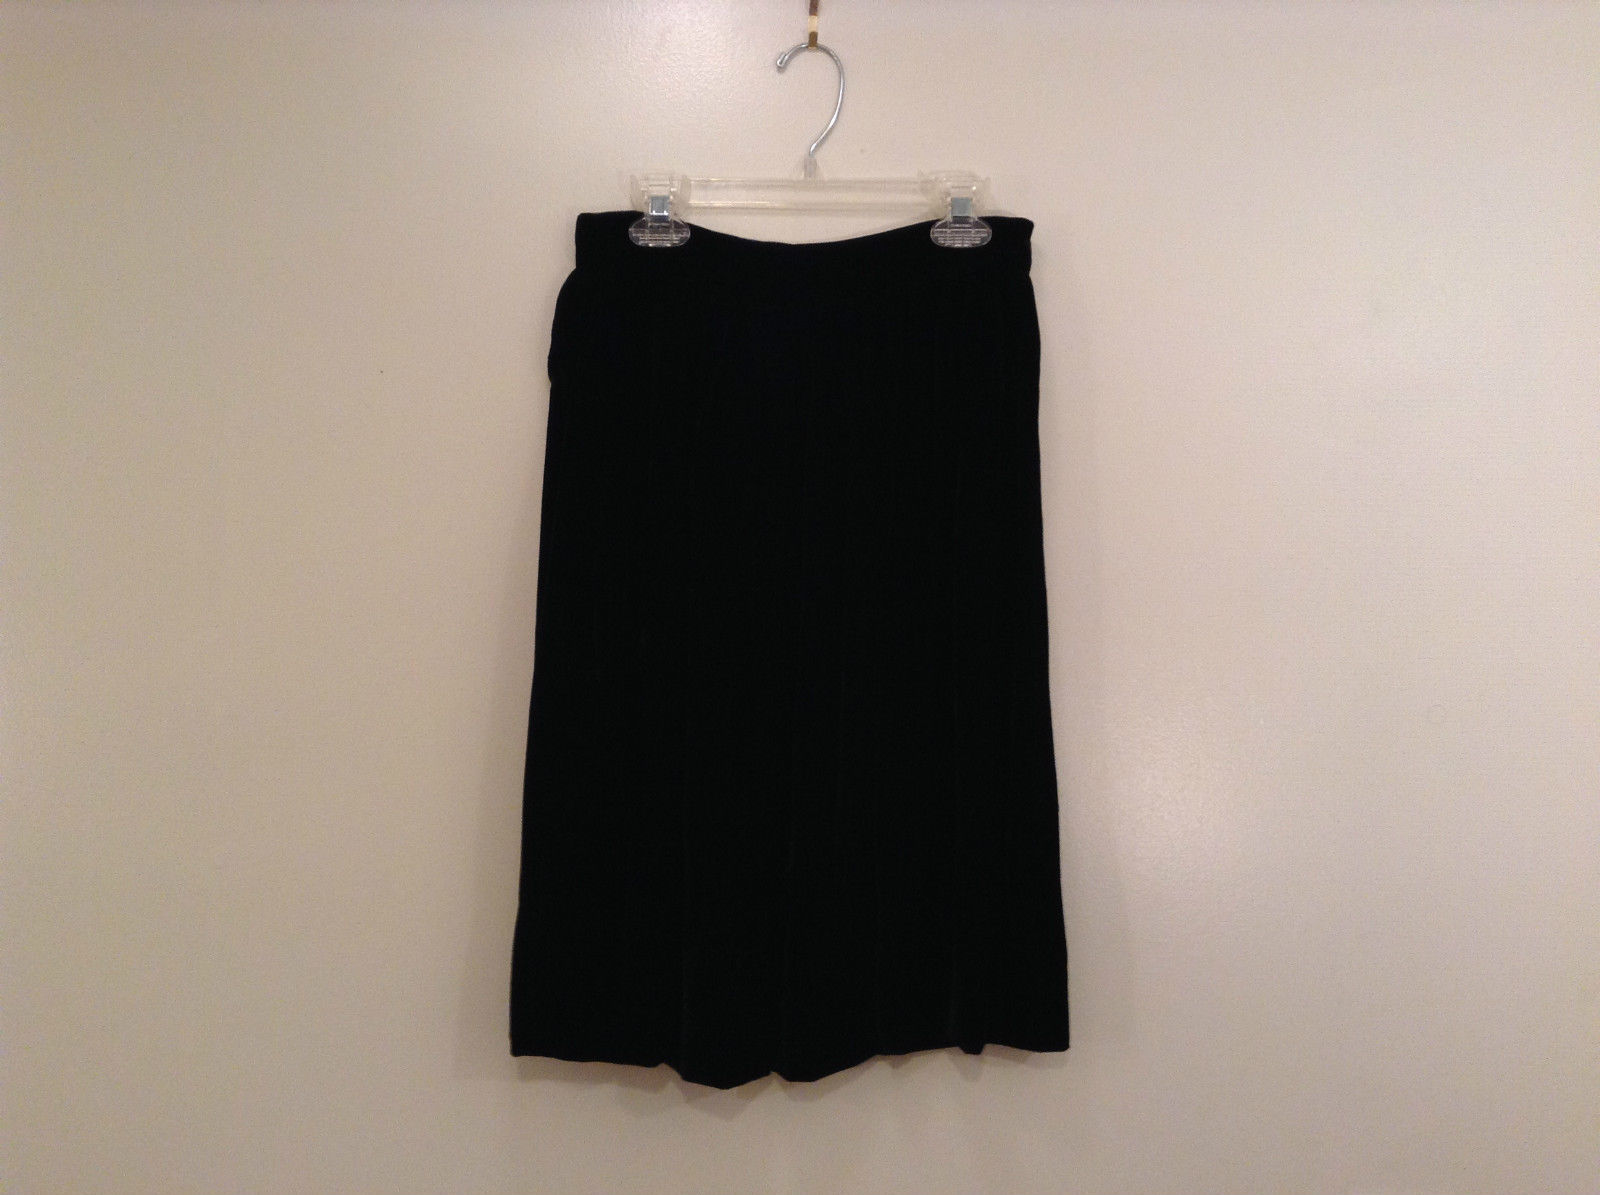 Saks Fifth Avenue Size 6 Black Velvet Dress Skirt Side Pockets Very Nice